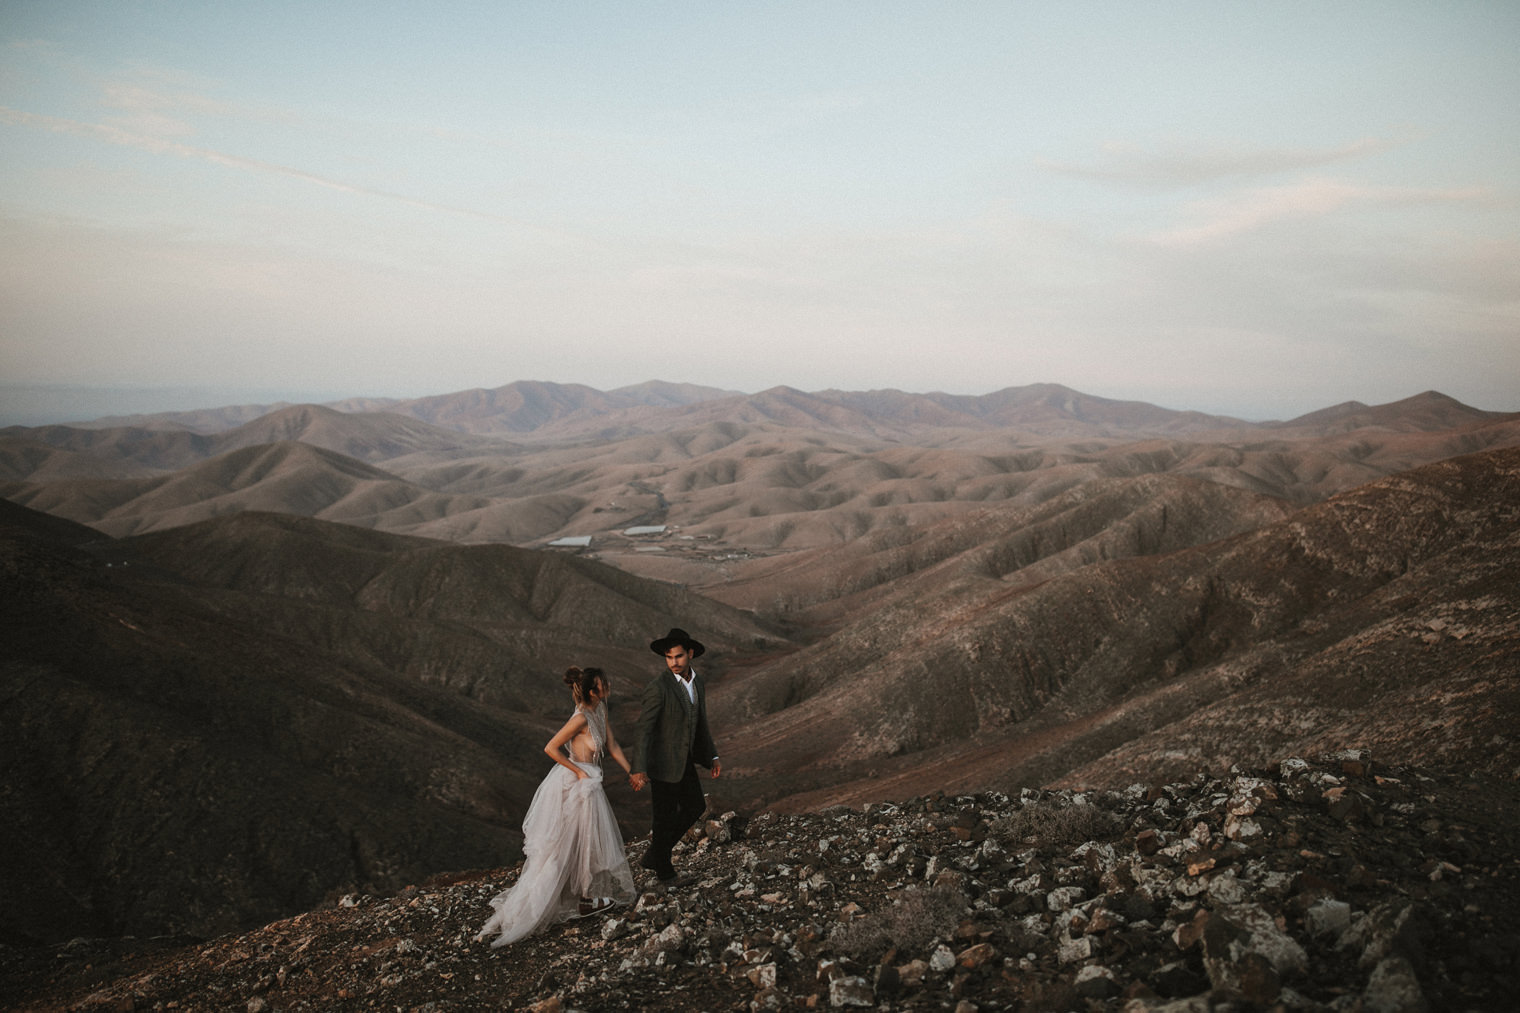 Bride and Groom walking together in the mountains of Fuerteventura